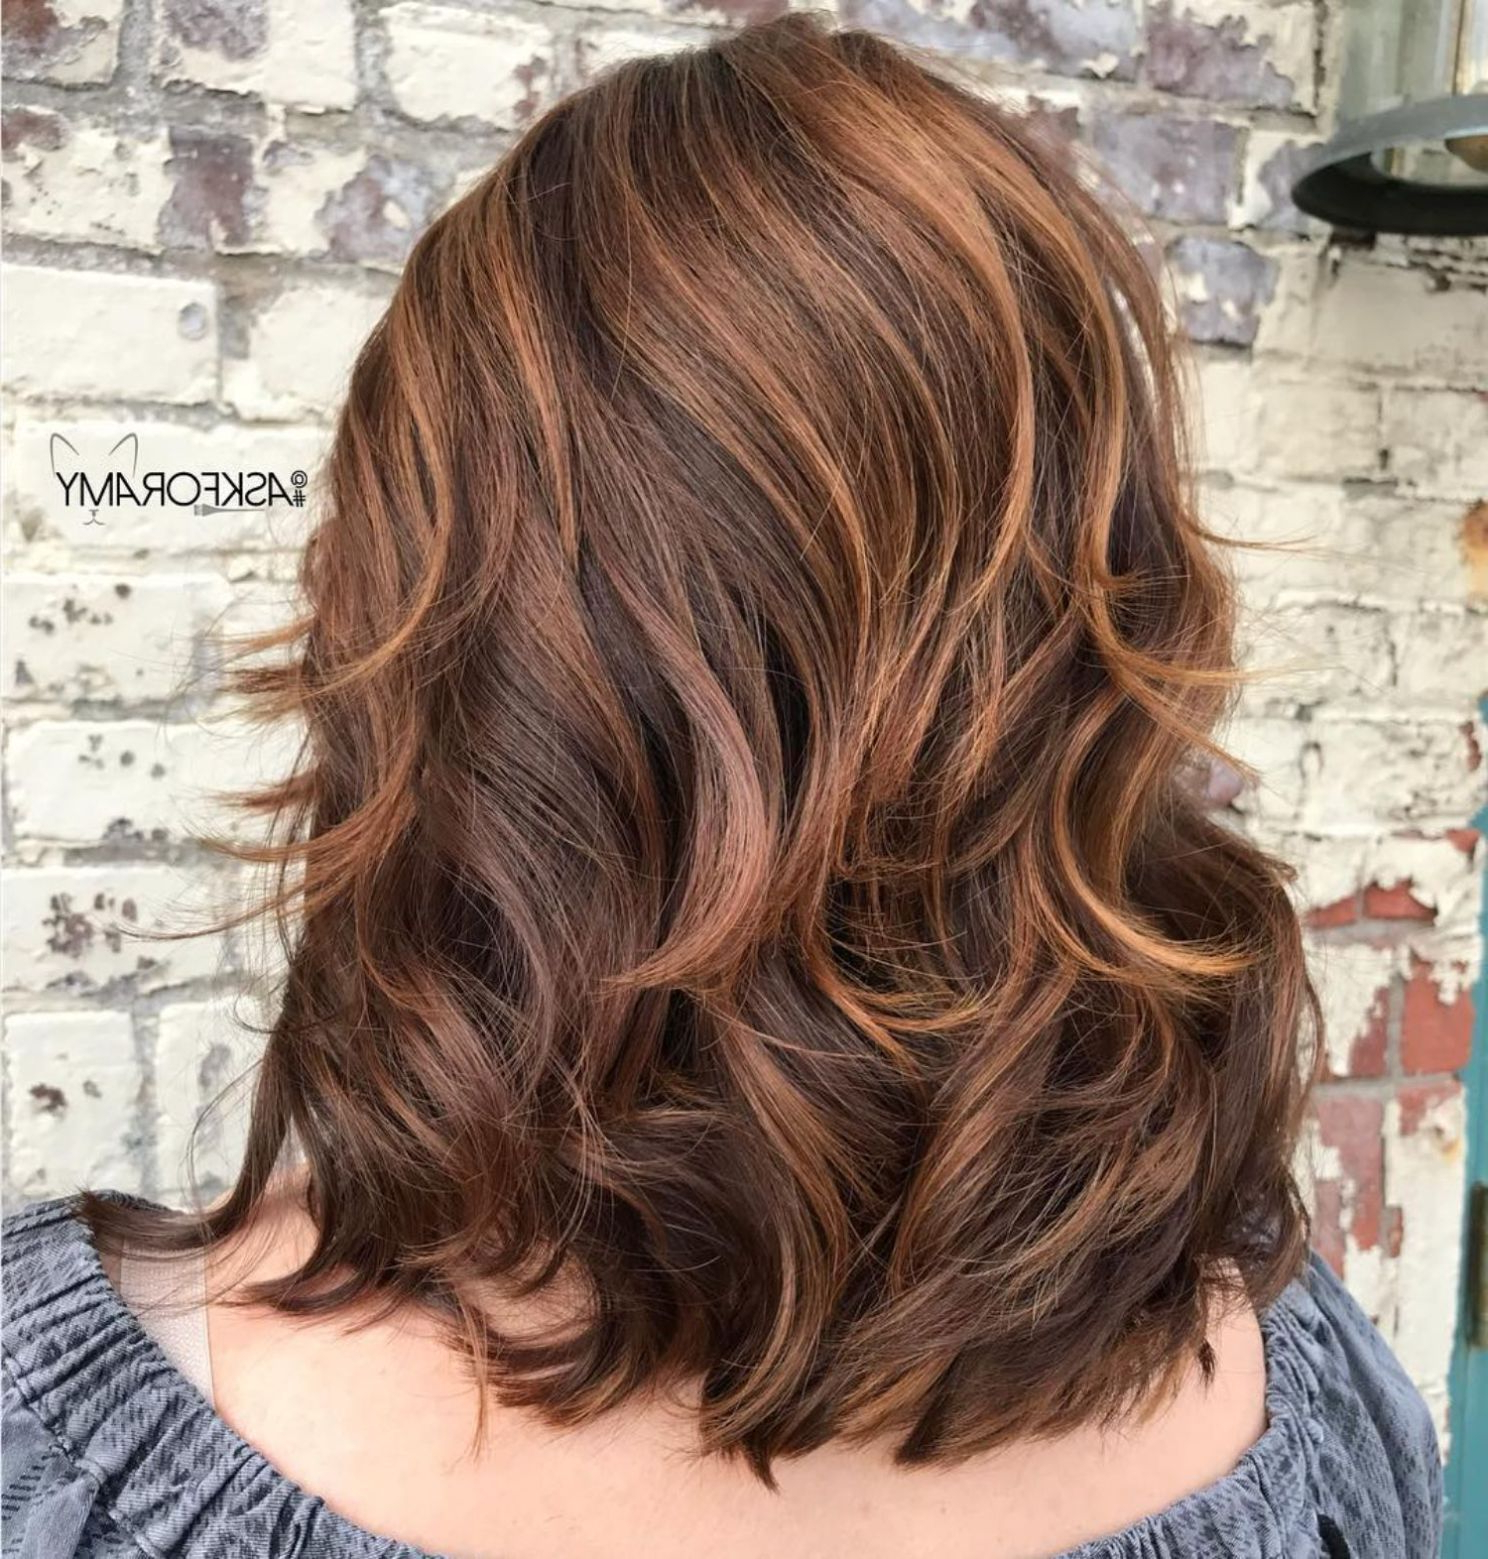 70 Brightest Medium Layered Haircuts To Light You Up | Hair In Chic Chocolate Layers Hairstyles (Gallery 2 of 20)